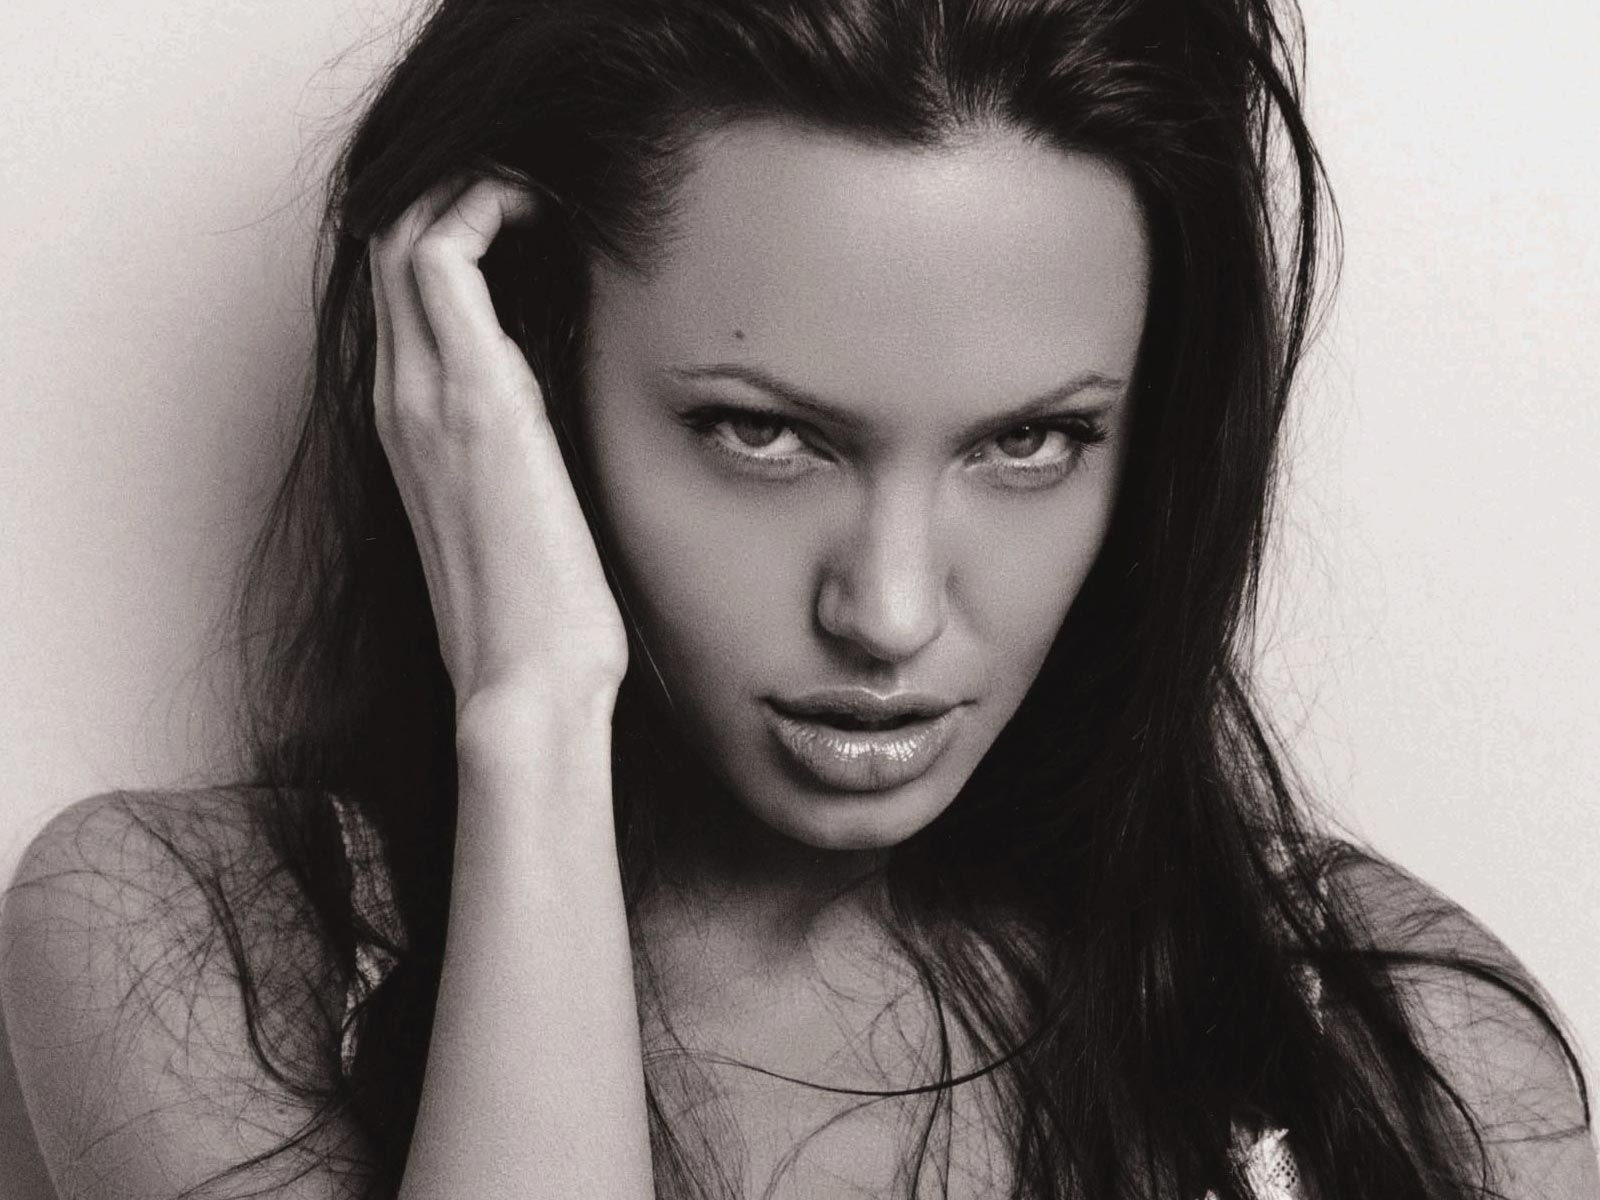 angelina jolie pics   movie gallery sexy actress gallery unseen celebs